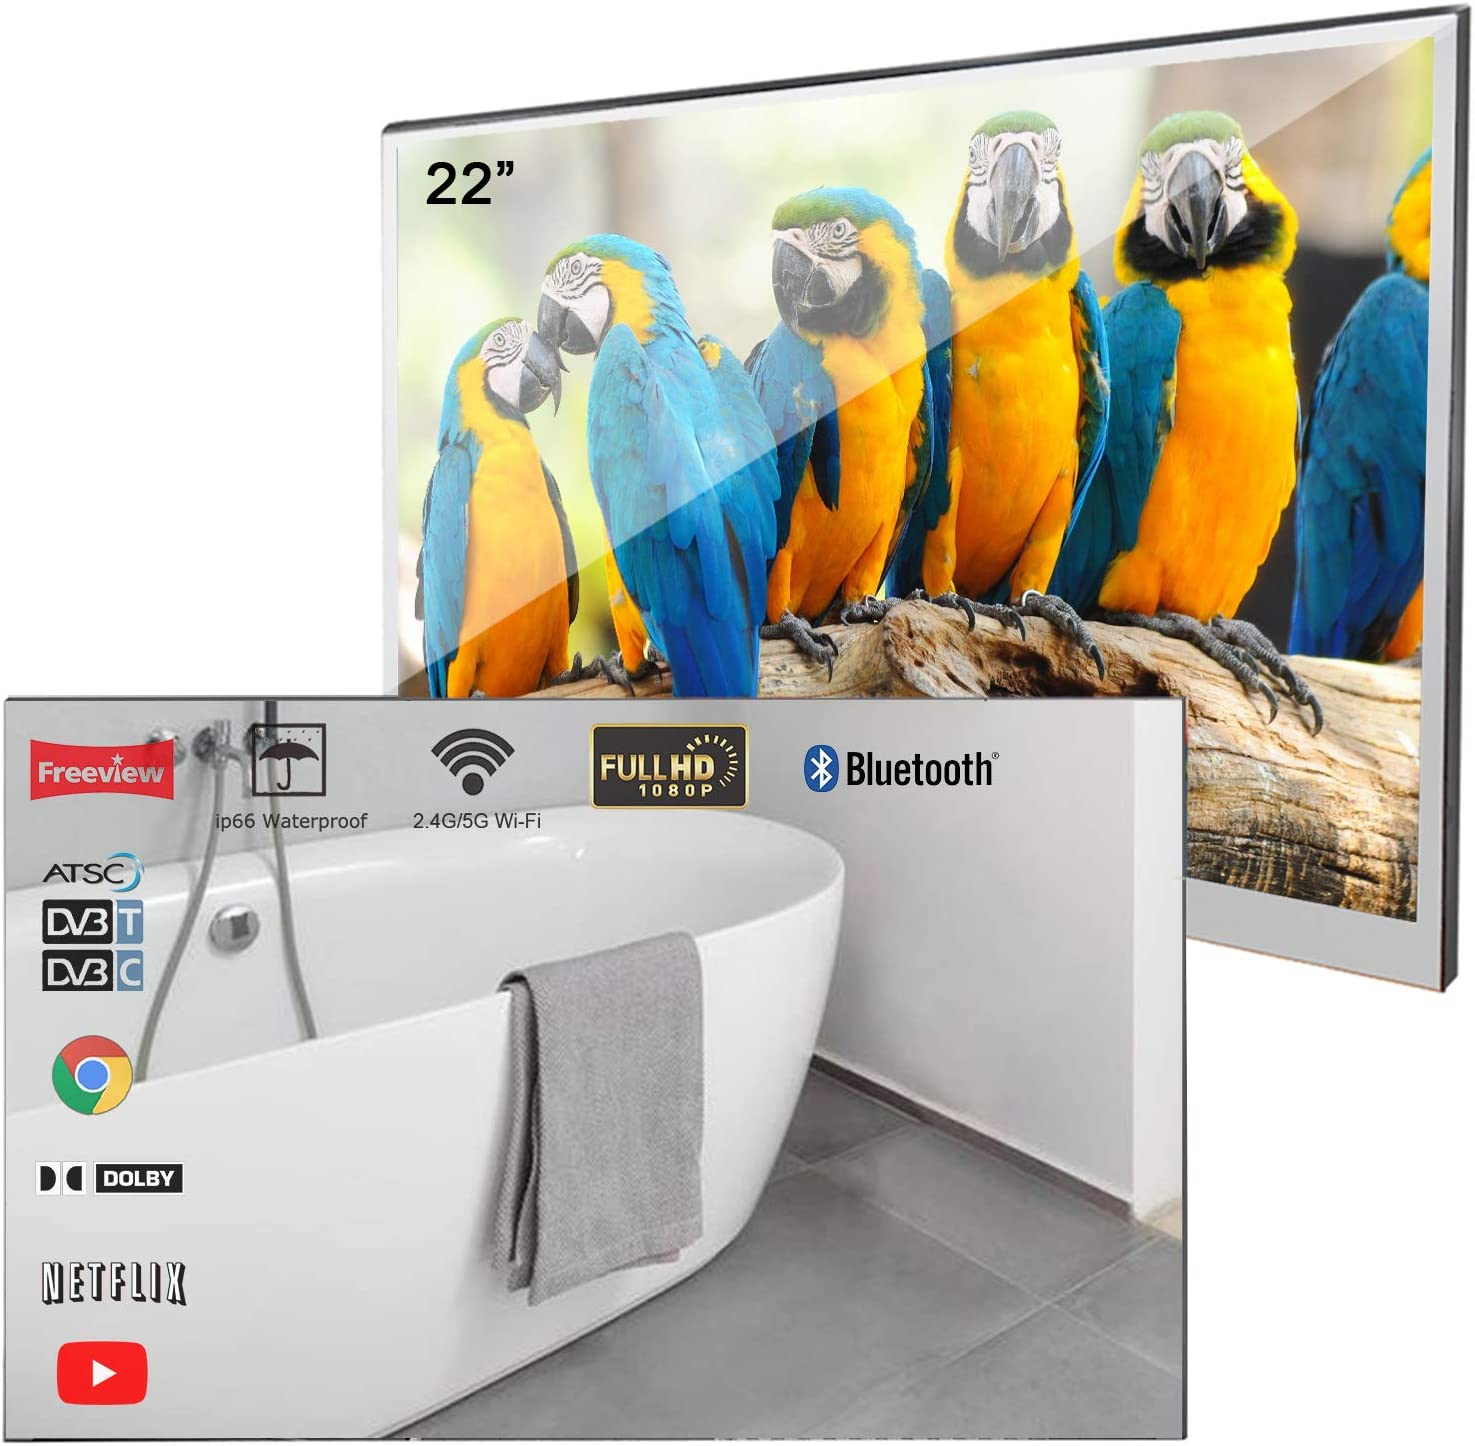 Soulaca Velasting 22 inches Updated Bathroom Bombing new work Mirror LED TV Ranking integrated 1st place Magic